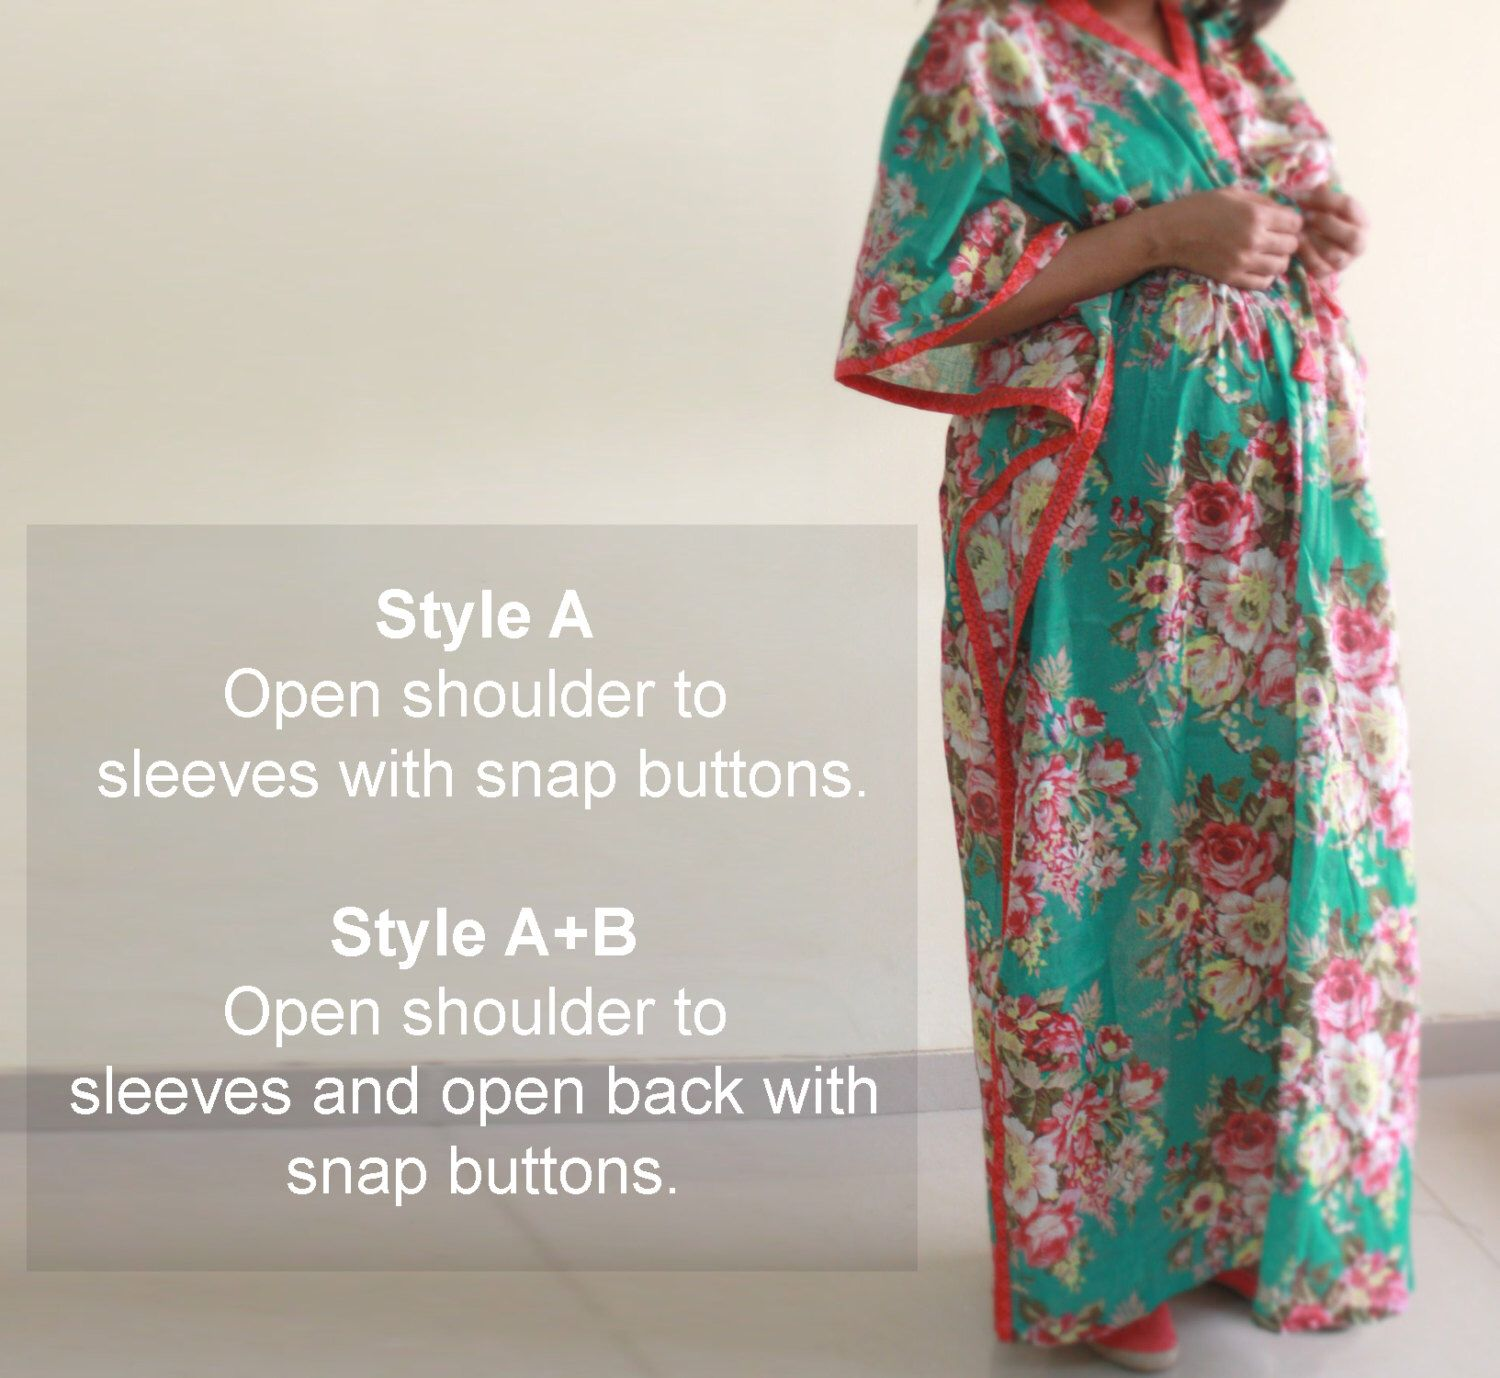 Hospital Gowns,Maternity Dress,Hospital Gown,Maternity Gown,Delivery ...